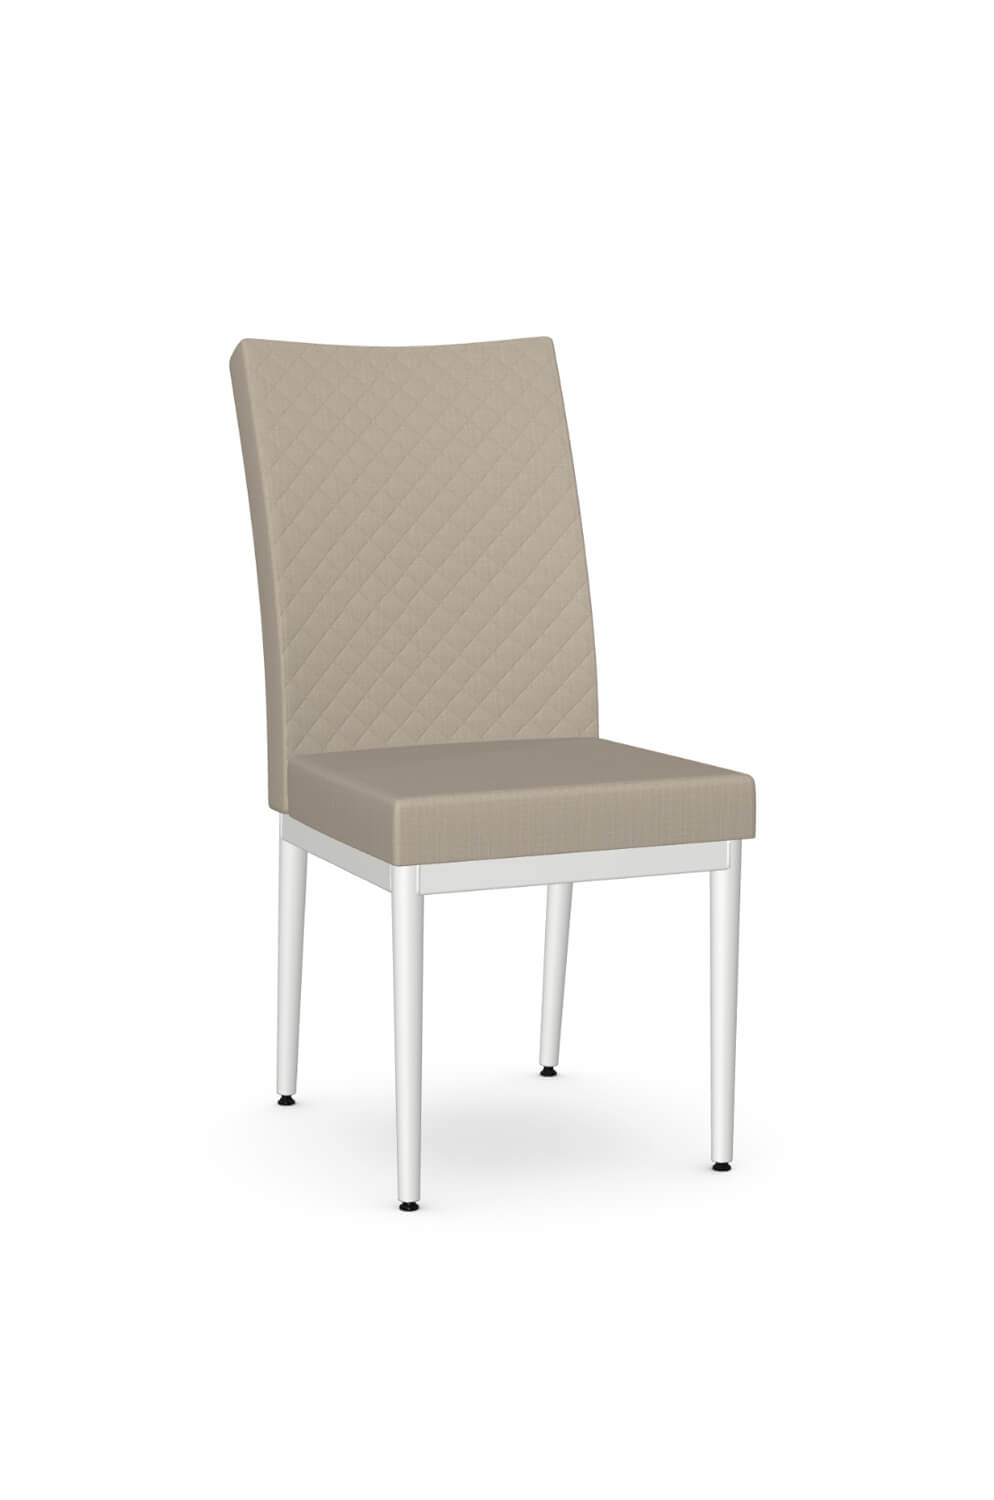 Amisco's Marlon Quilted Upholstered Modern Dining Chair